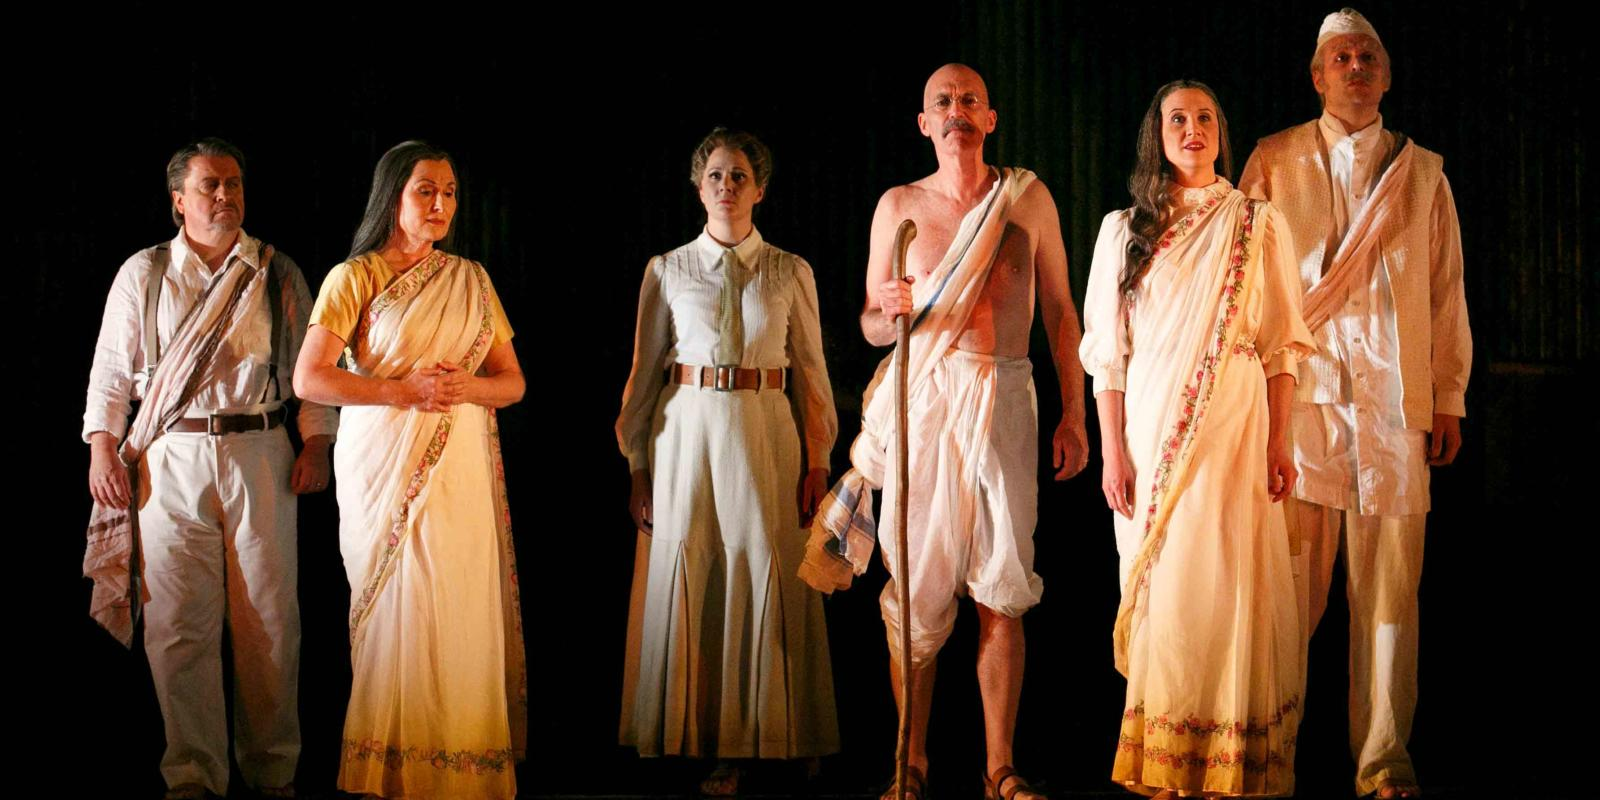 An image of Nicholas Folwell, Janis Kelly, Clare Eggington, Alan Oke, Stephanie Marshall and Nicholas Masters in Phelim McDermott's 2013 production of Satyagraha